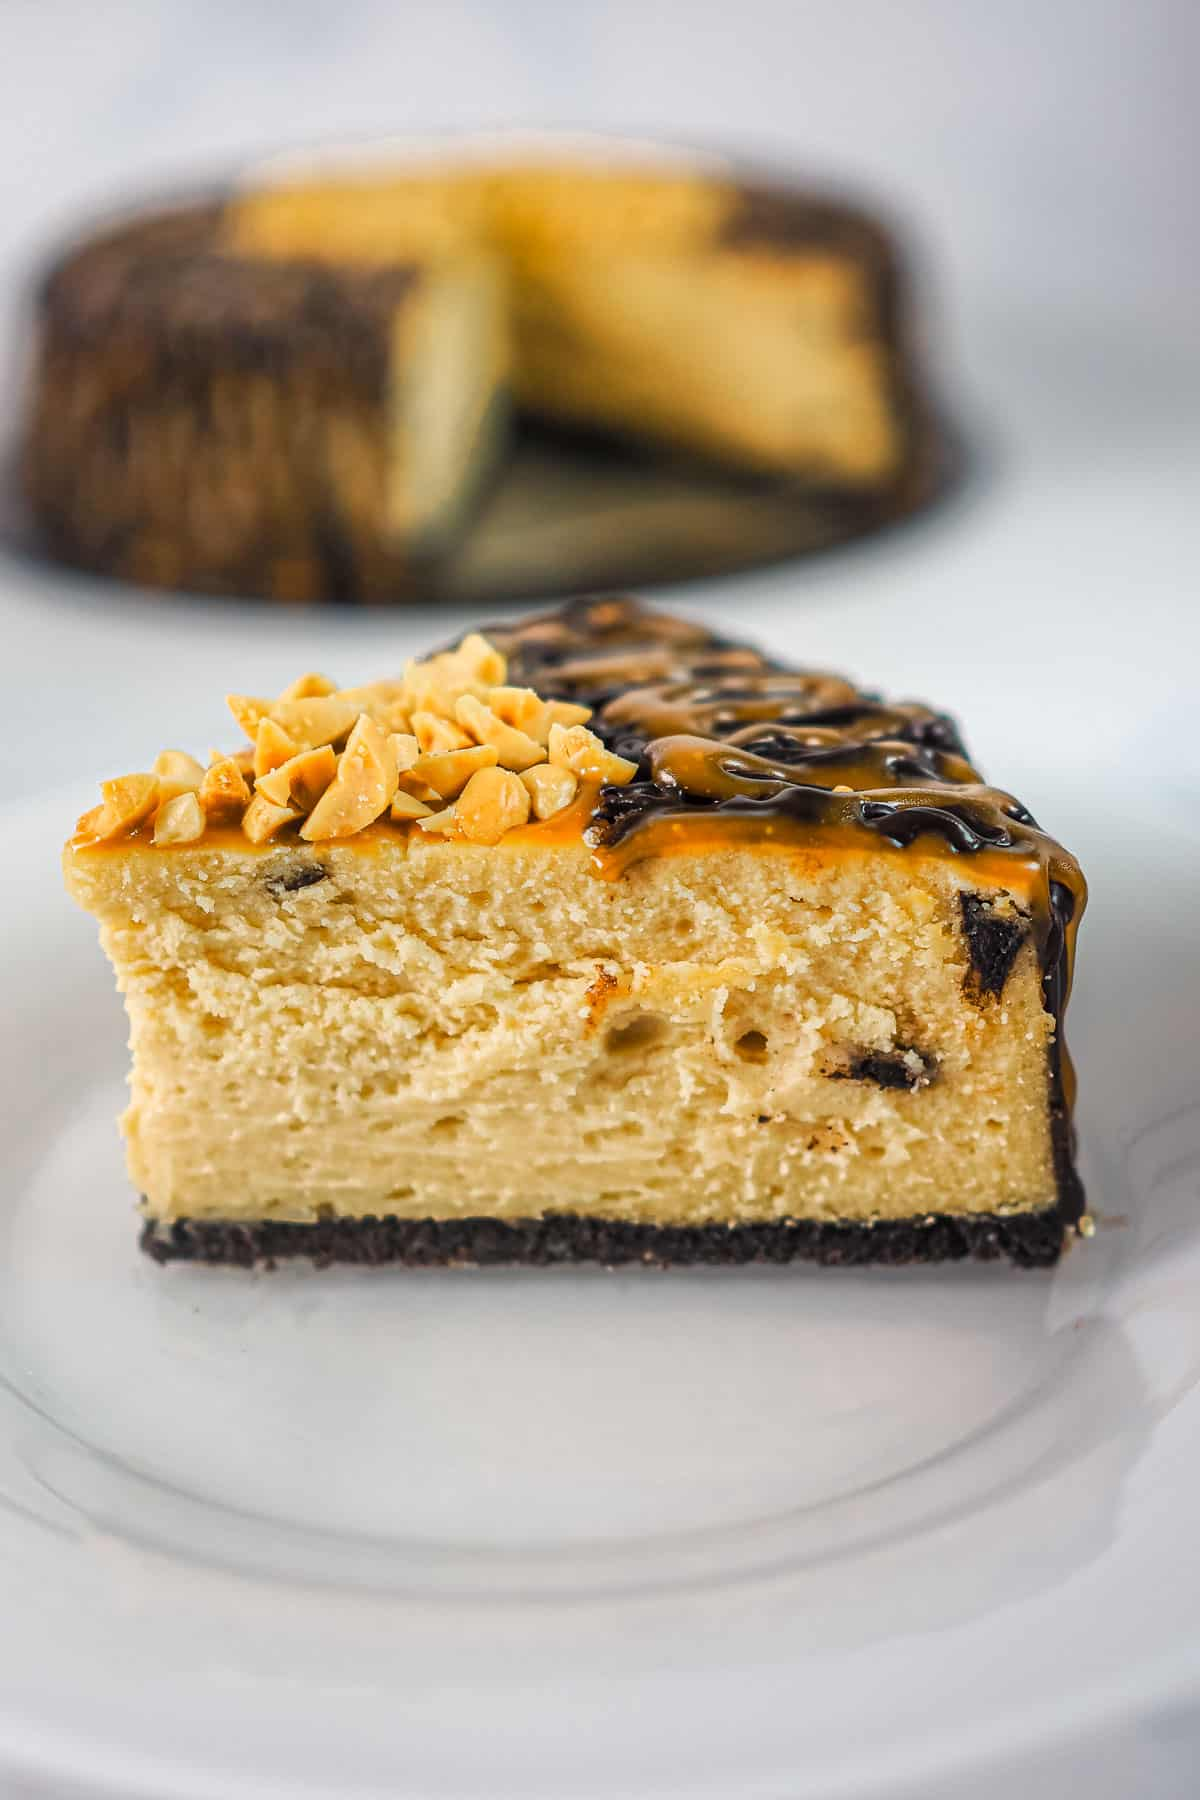 A slice of chocolate peanut butter cheesecake on a white plate